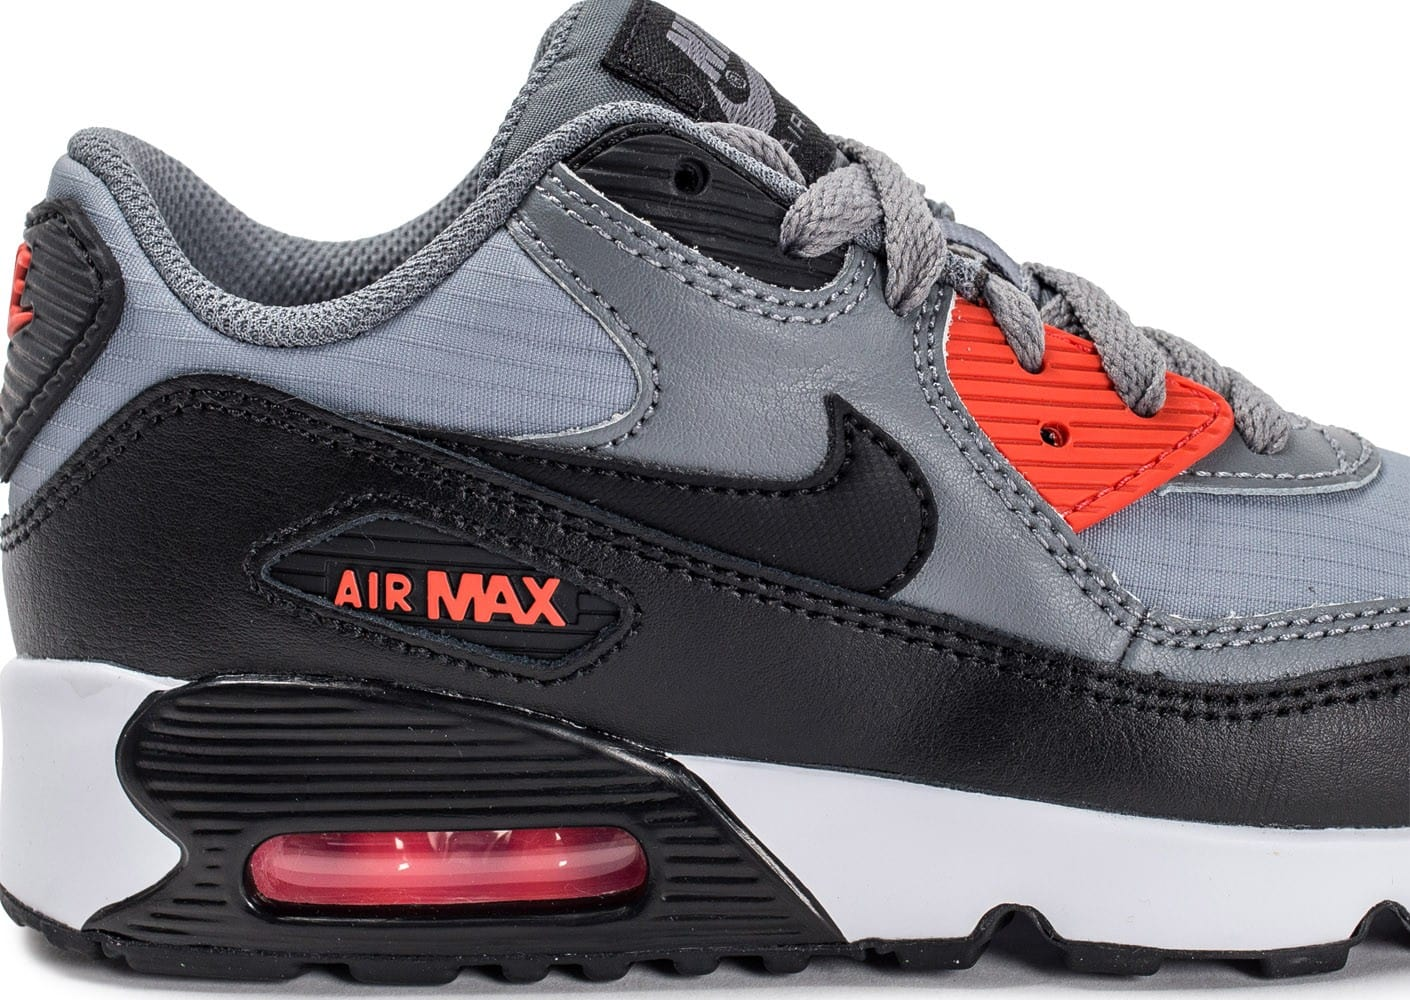 nike air max 90 mesh enfant grise chaussures enfant chausport. Black Bedroom Furniture Sets. Home Design Ideas